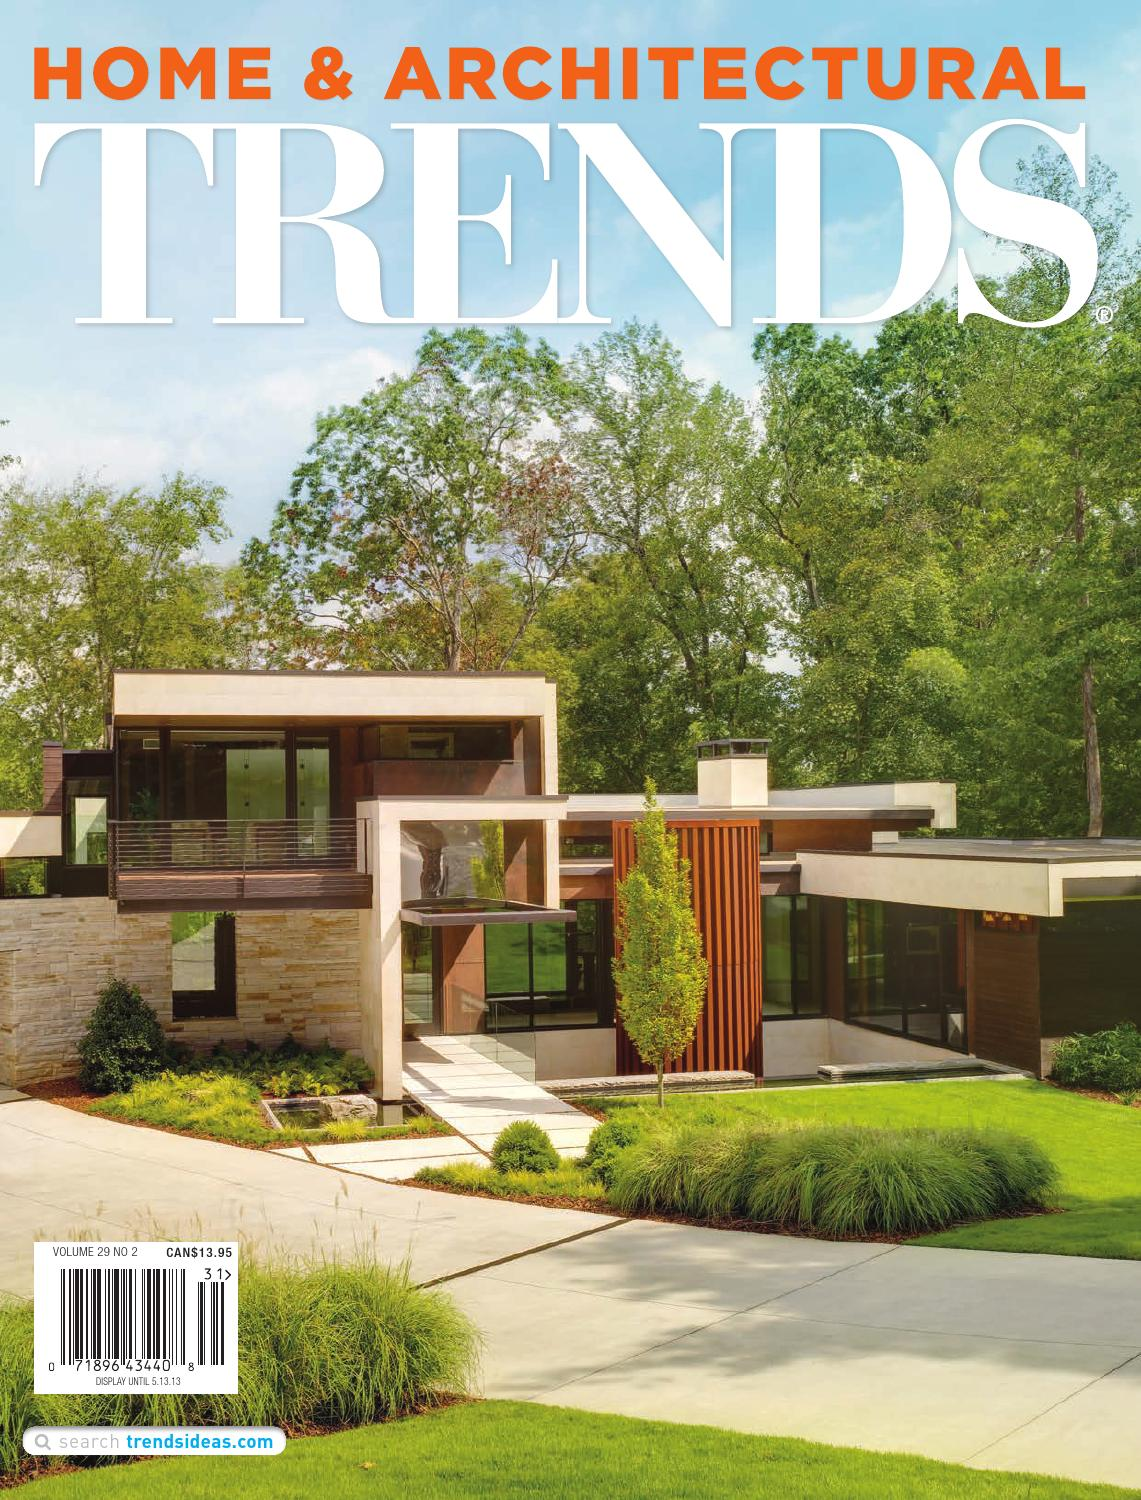 HOME amp; ARCHITECTURAL TRENDS USA Vol 29/02 by trendsideas